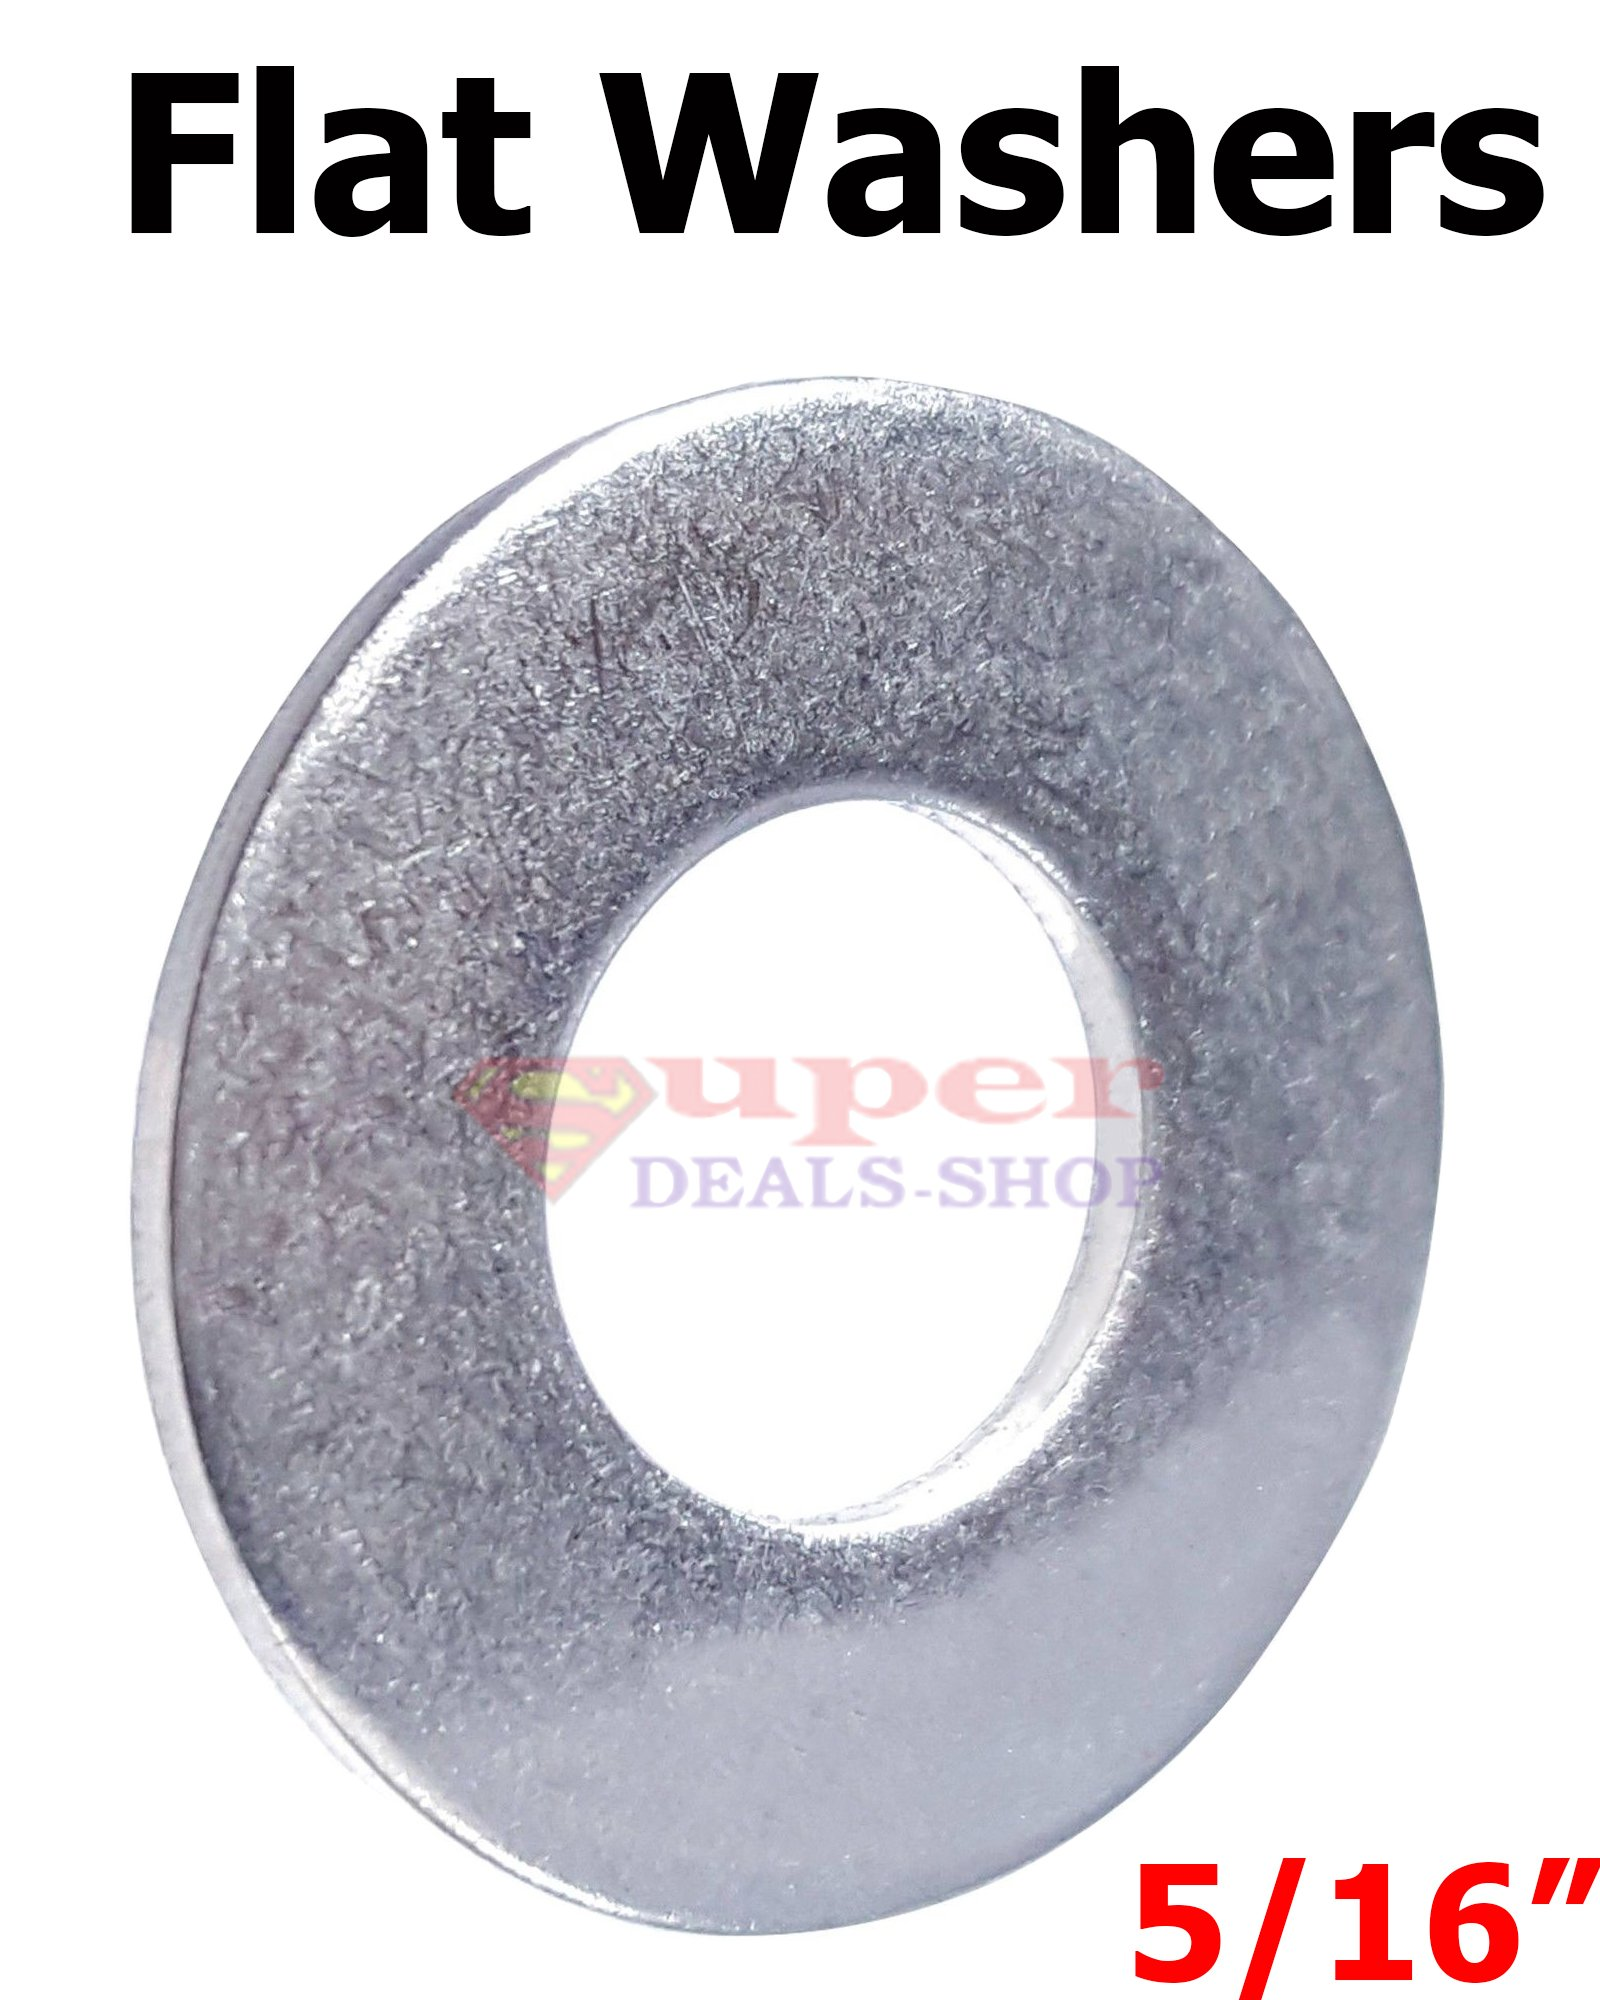 250 Pcs 5/16 Stainless Steel Flat Washers SS Flat Washer Flats Super-Deals-Shop